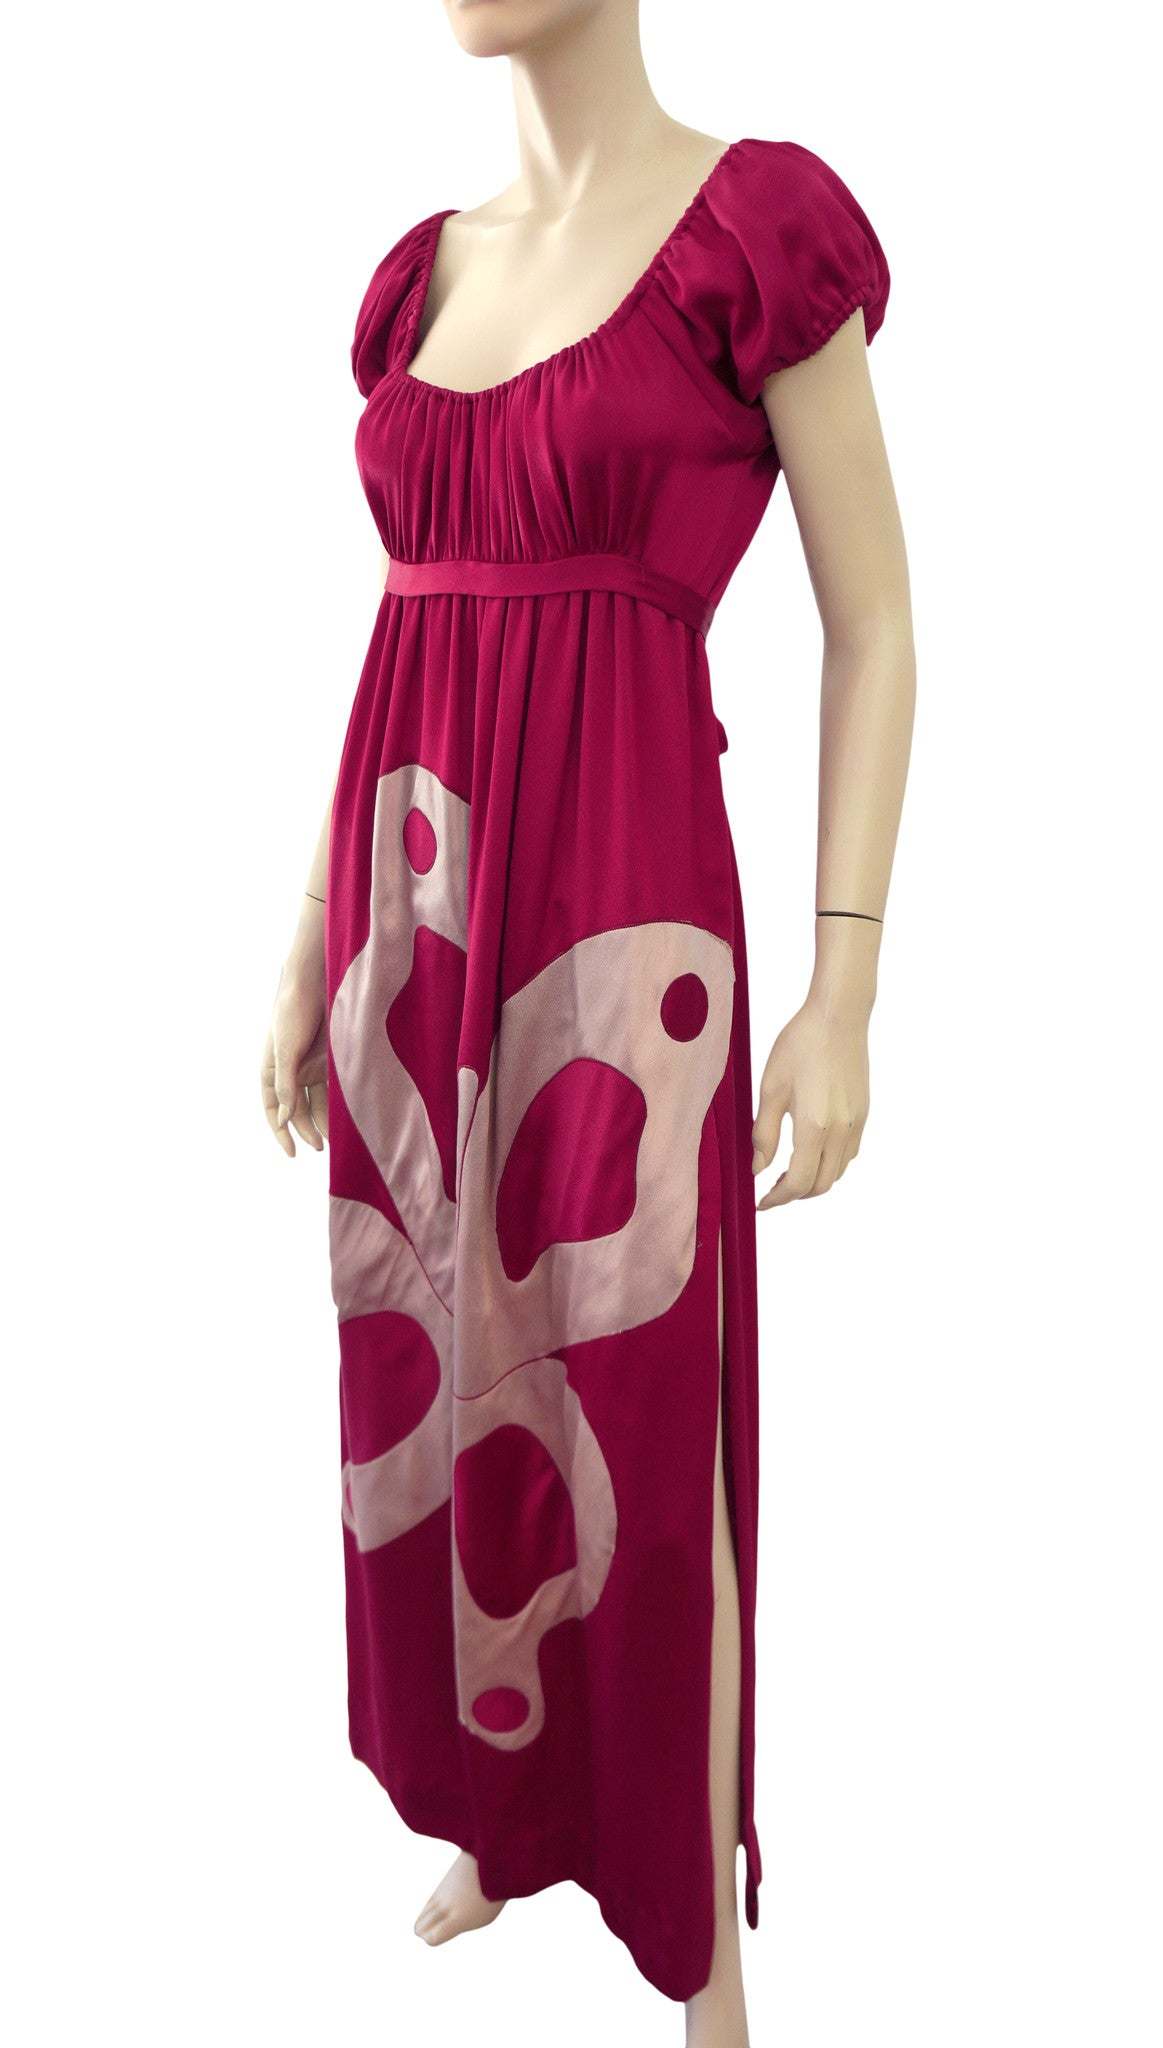 ee1bf501847209 ANNE FOGARTY Vintage 70s Red Sateen Pop Art Butterfly Applique Maxi Dress S